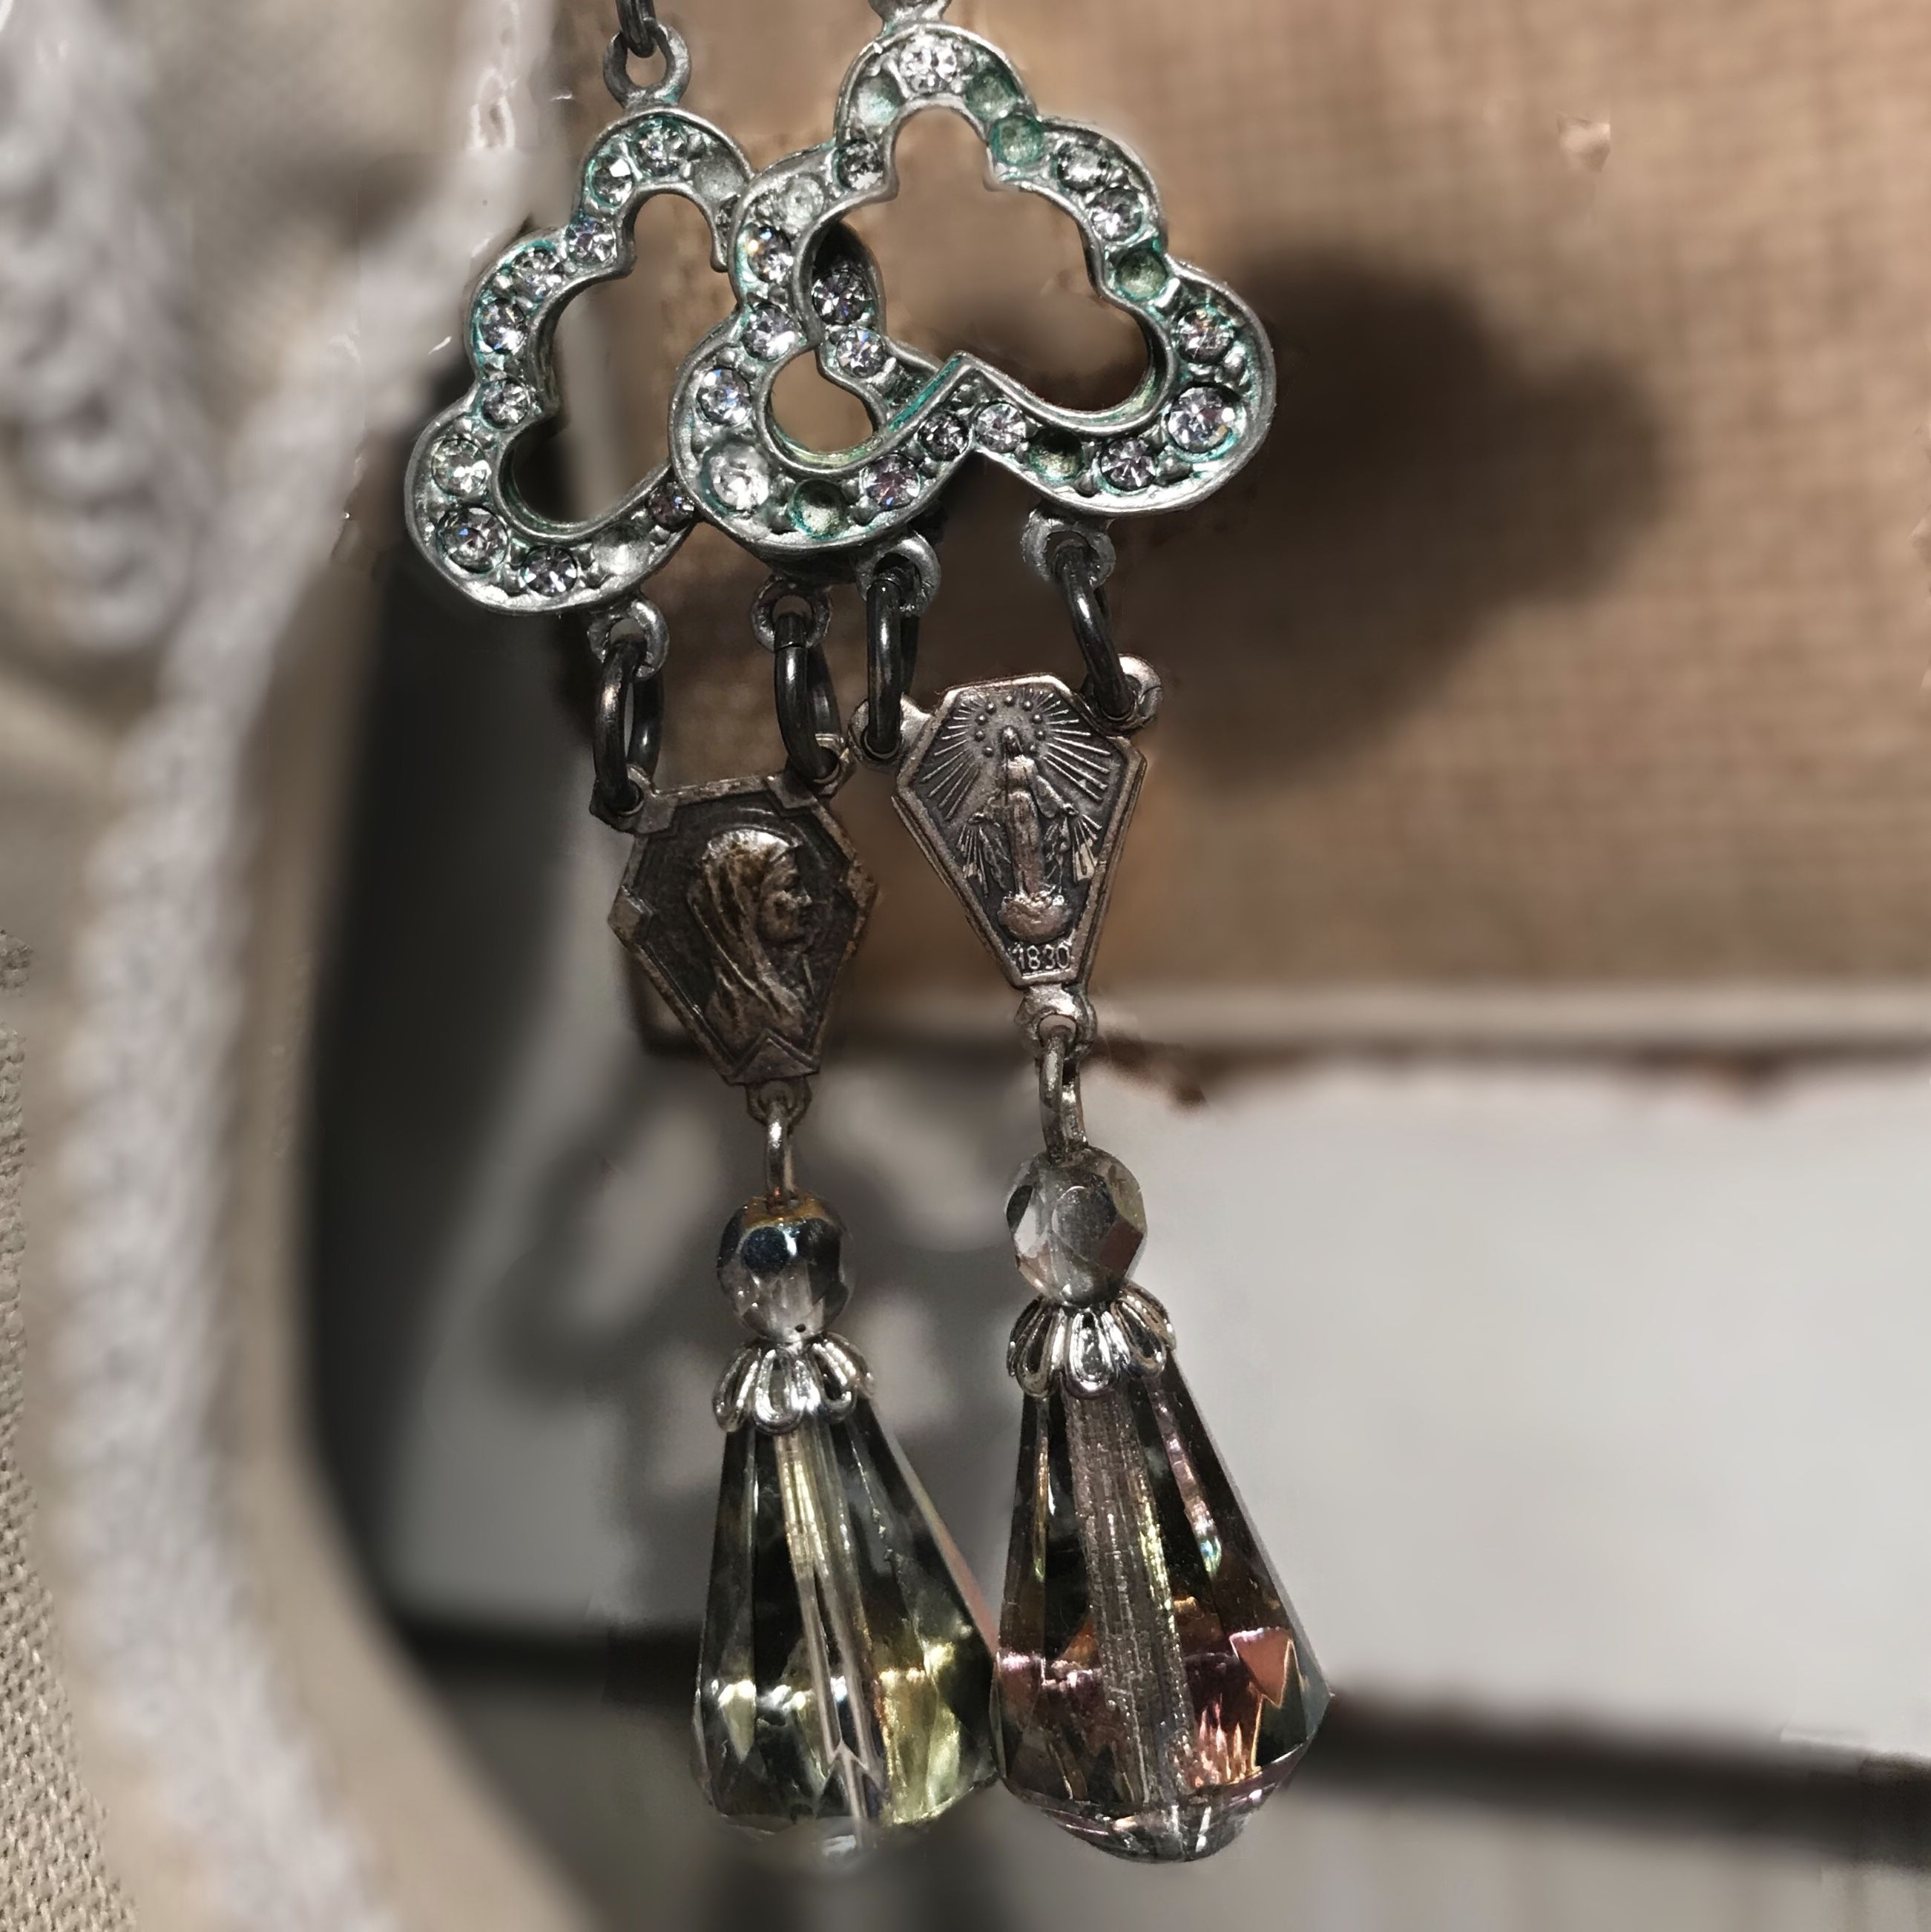 Tear of Assemblage drop necklaces for ladies forecast to wear for winter in 2019